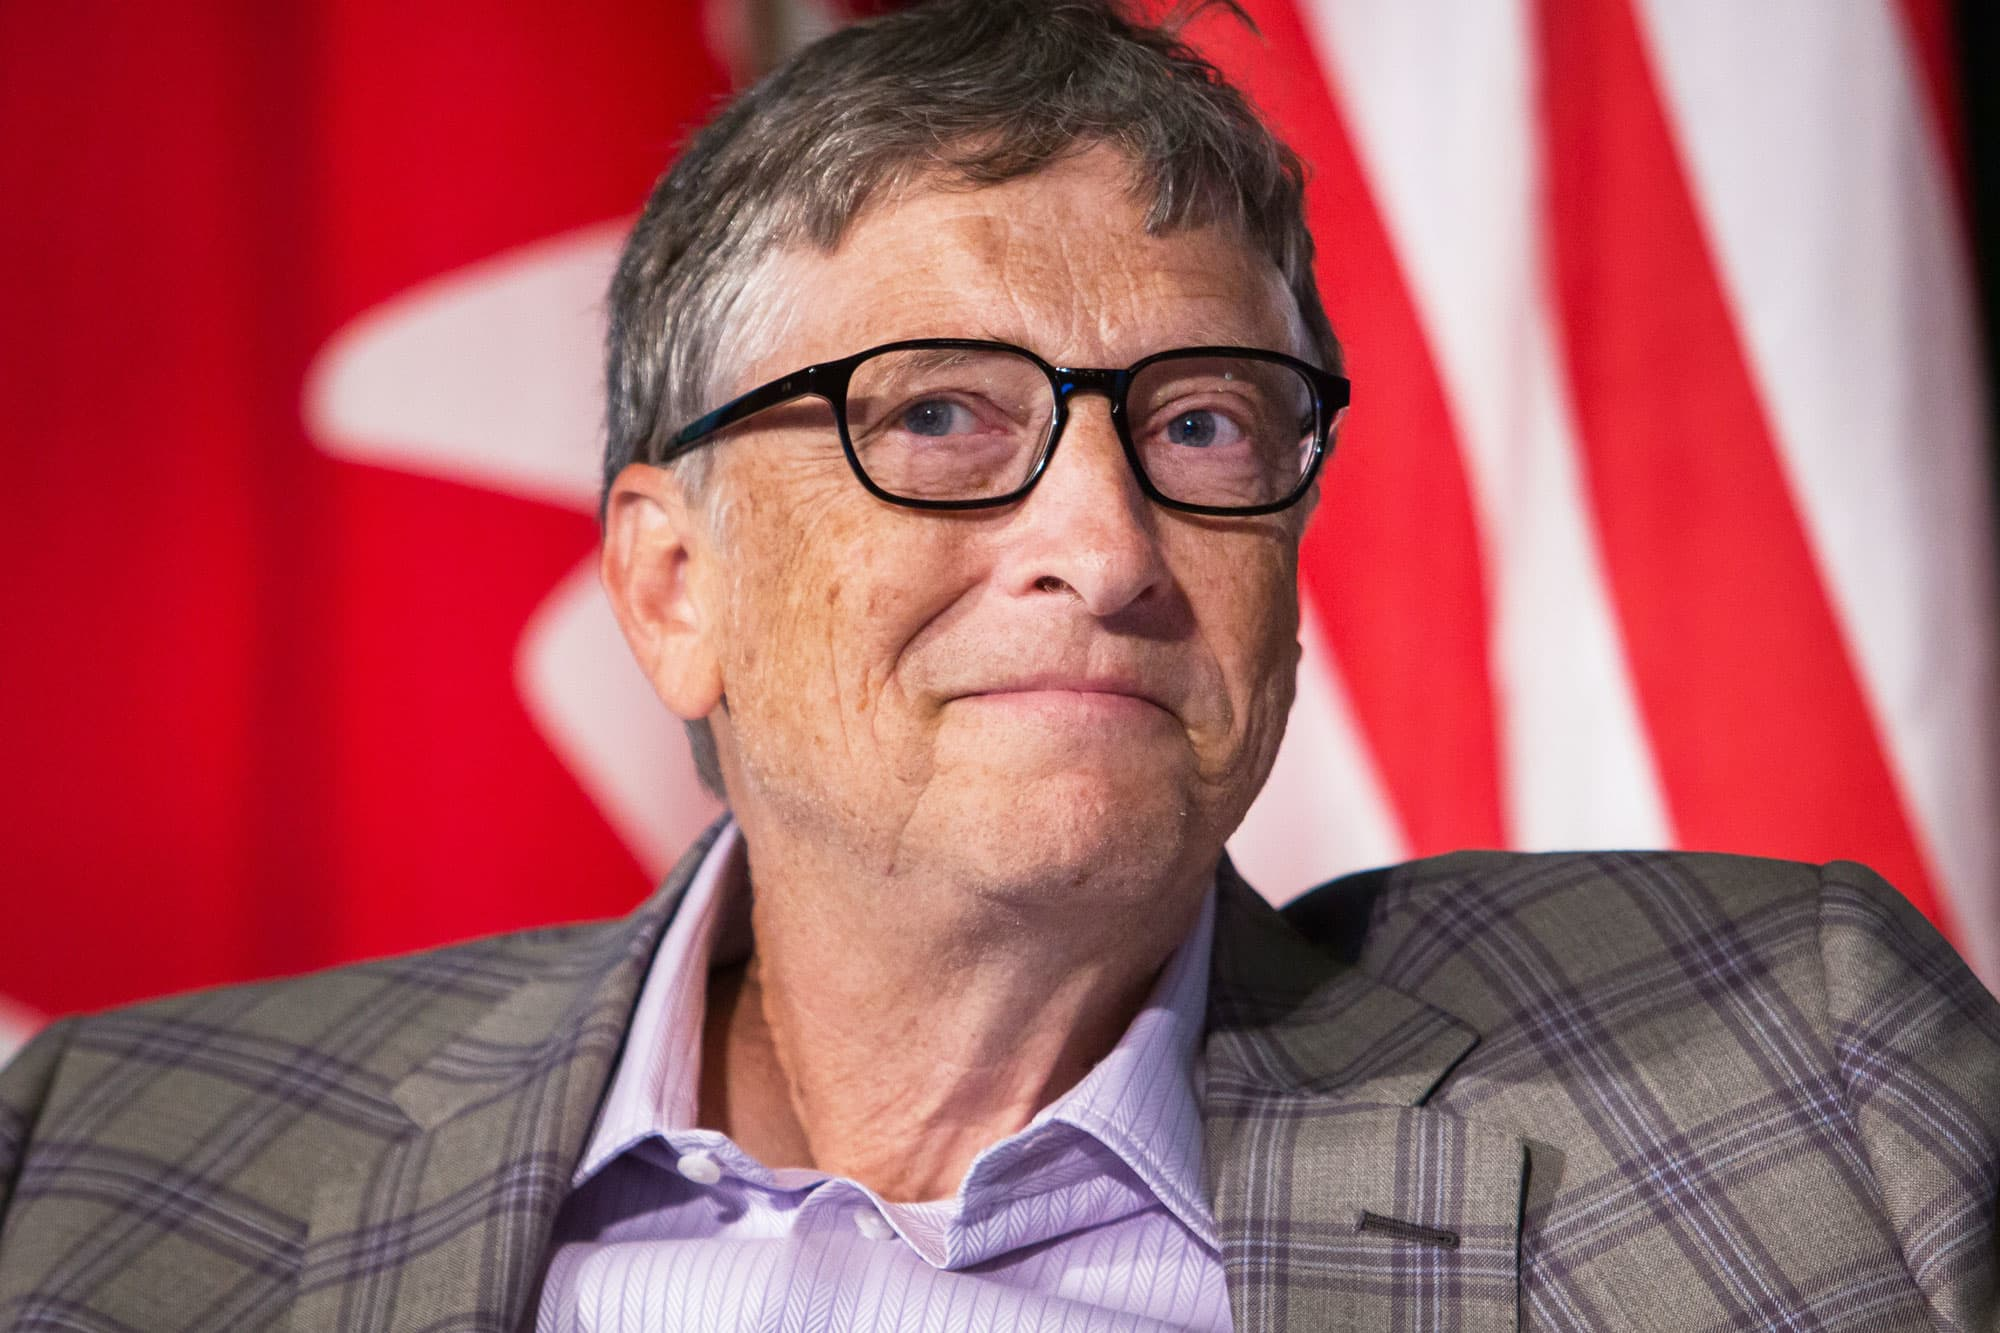 Bill Gates: These 5 books are so good, 'they kept me up reading long past' bedtime